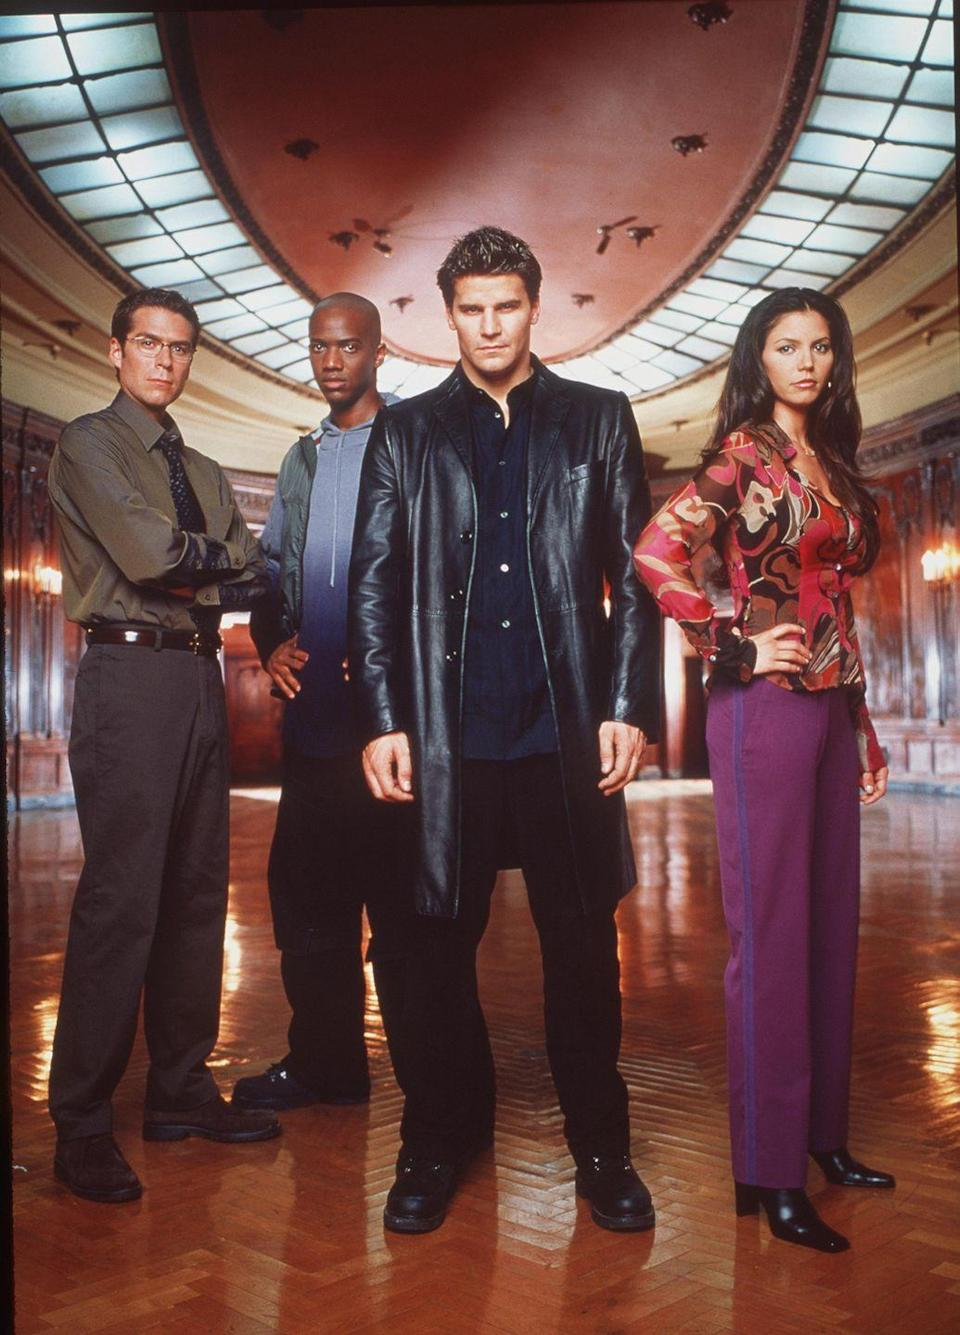 """<p>This spinoff from <em>Buffy the Vampire Slayer</em> picks up with Angel (played by David Boreanaz) as he moves to Los Angeles in the wake of his breakup with Buffy. Angel works as a private detective, trying to help the helpless and assuage his guilt for centuries of bad deeds. Along the way he must fight a host of other demonic forces that try to stop him. </p><p><strong>Where to Watch:</strong> <a href=""""https://www.hulu.com/series/angel-8034c900-f242-4cea-96ba-1c6f61f812af"""" rel=""""nofollow noopener"""" target=""""_blank"""" data-ylk=""""slk:Hulu"""" class=""""link rapid-noclick-resp"""">Hulu</a> <em>(five seasons)</em></p>"""